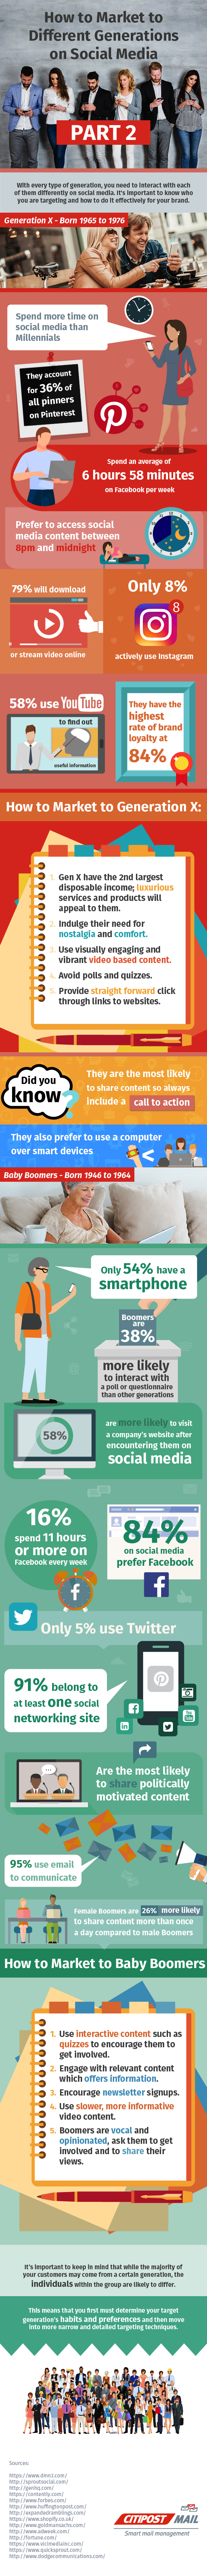 how-to-market-to-each-generation-on-social-media-part-2_58f8cf87f0b4e